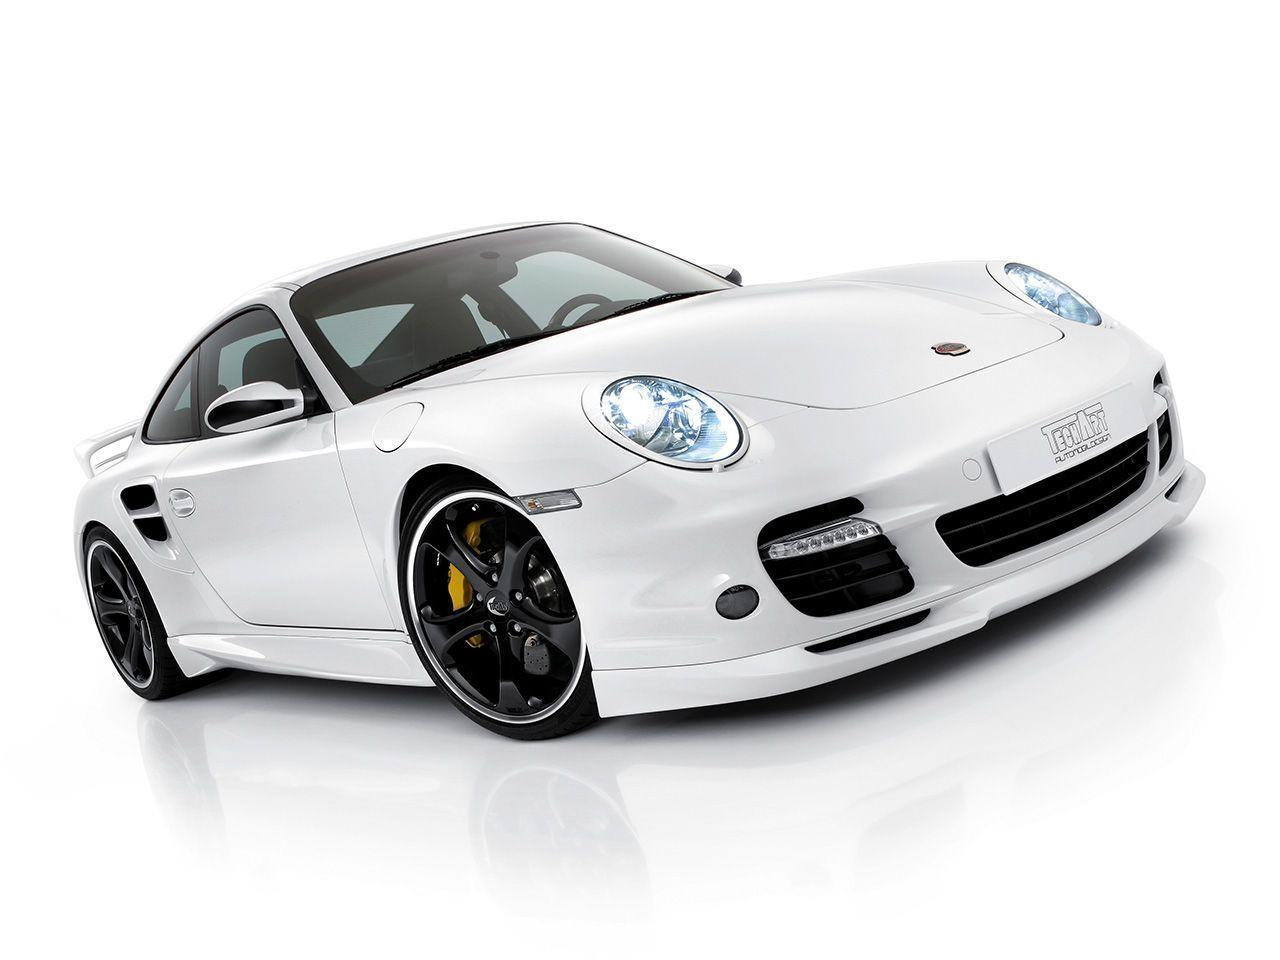 Porsche 911 Turbo Techart Cars Wallpaper | Fast Cars